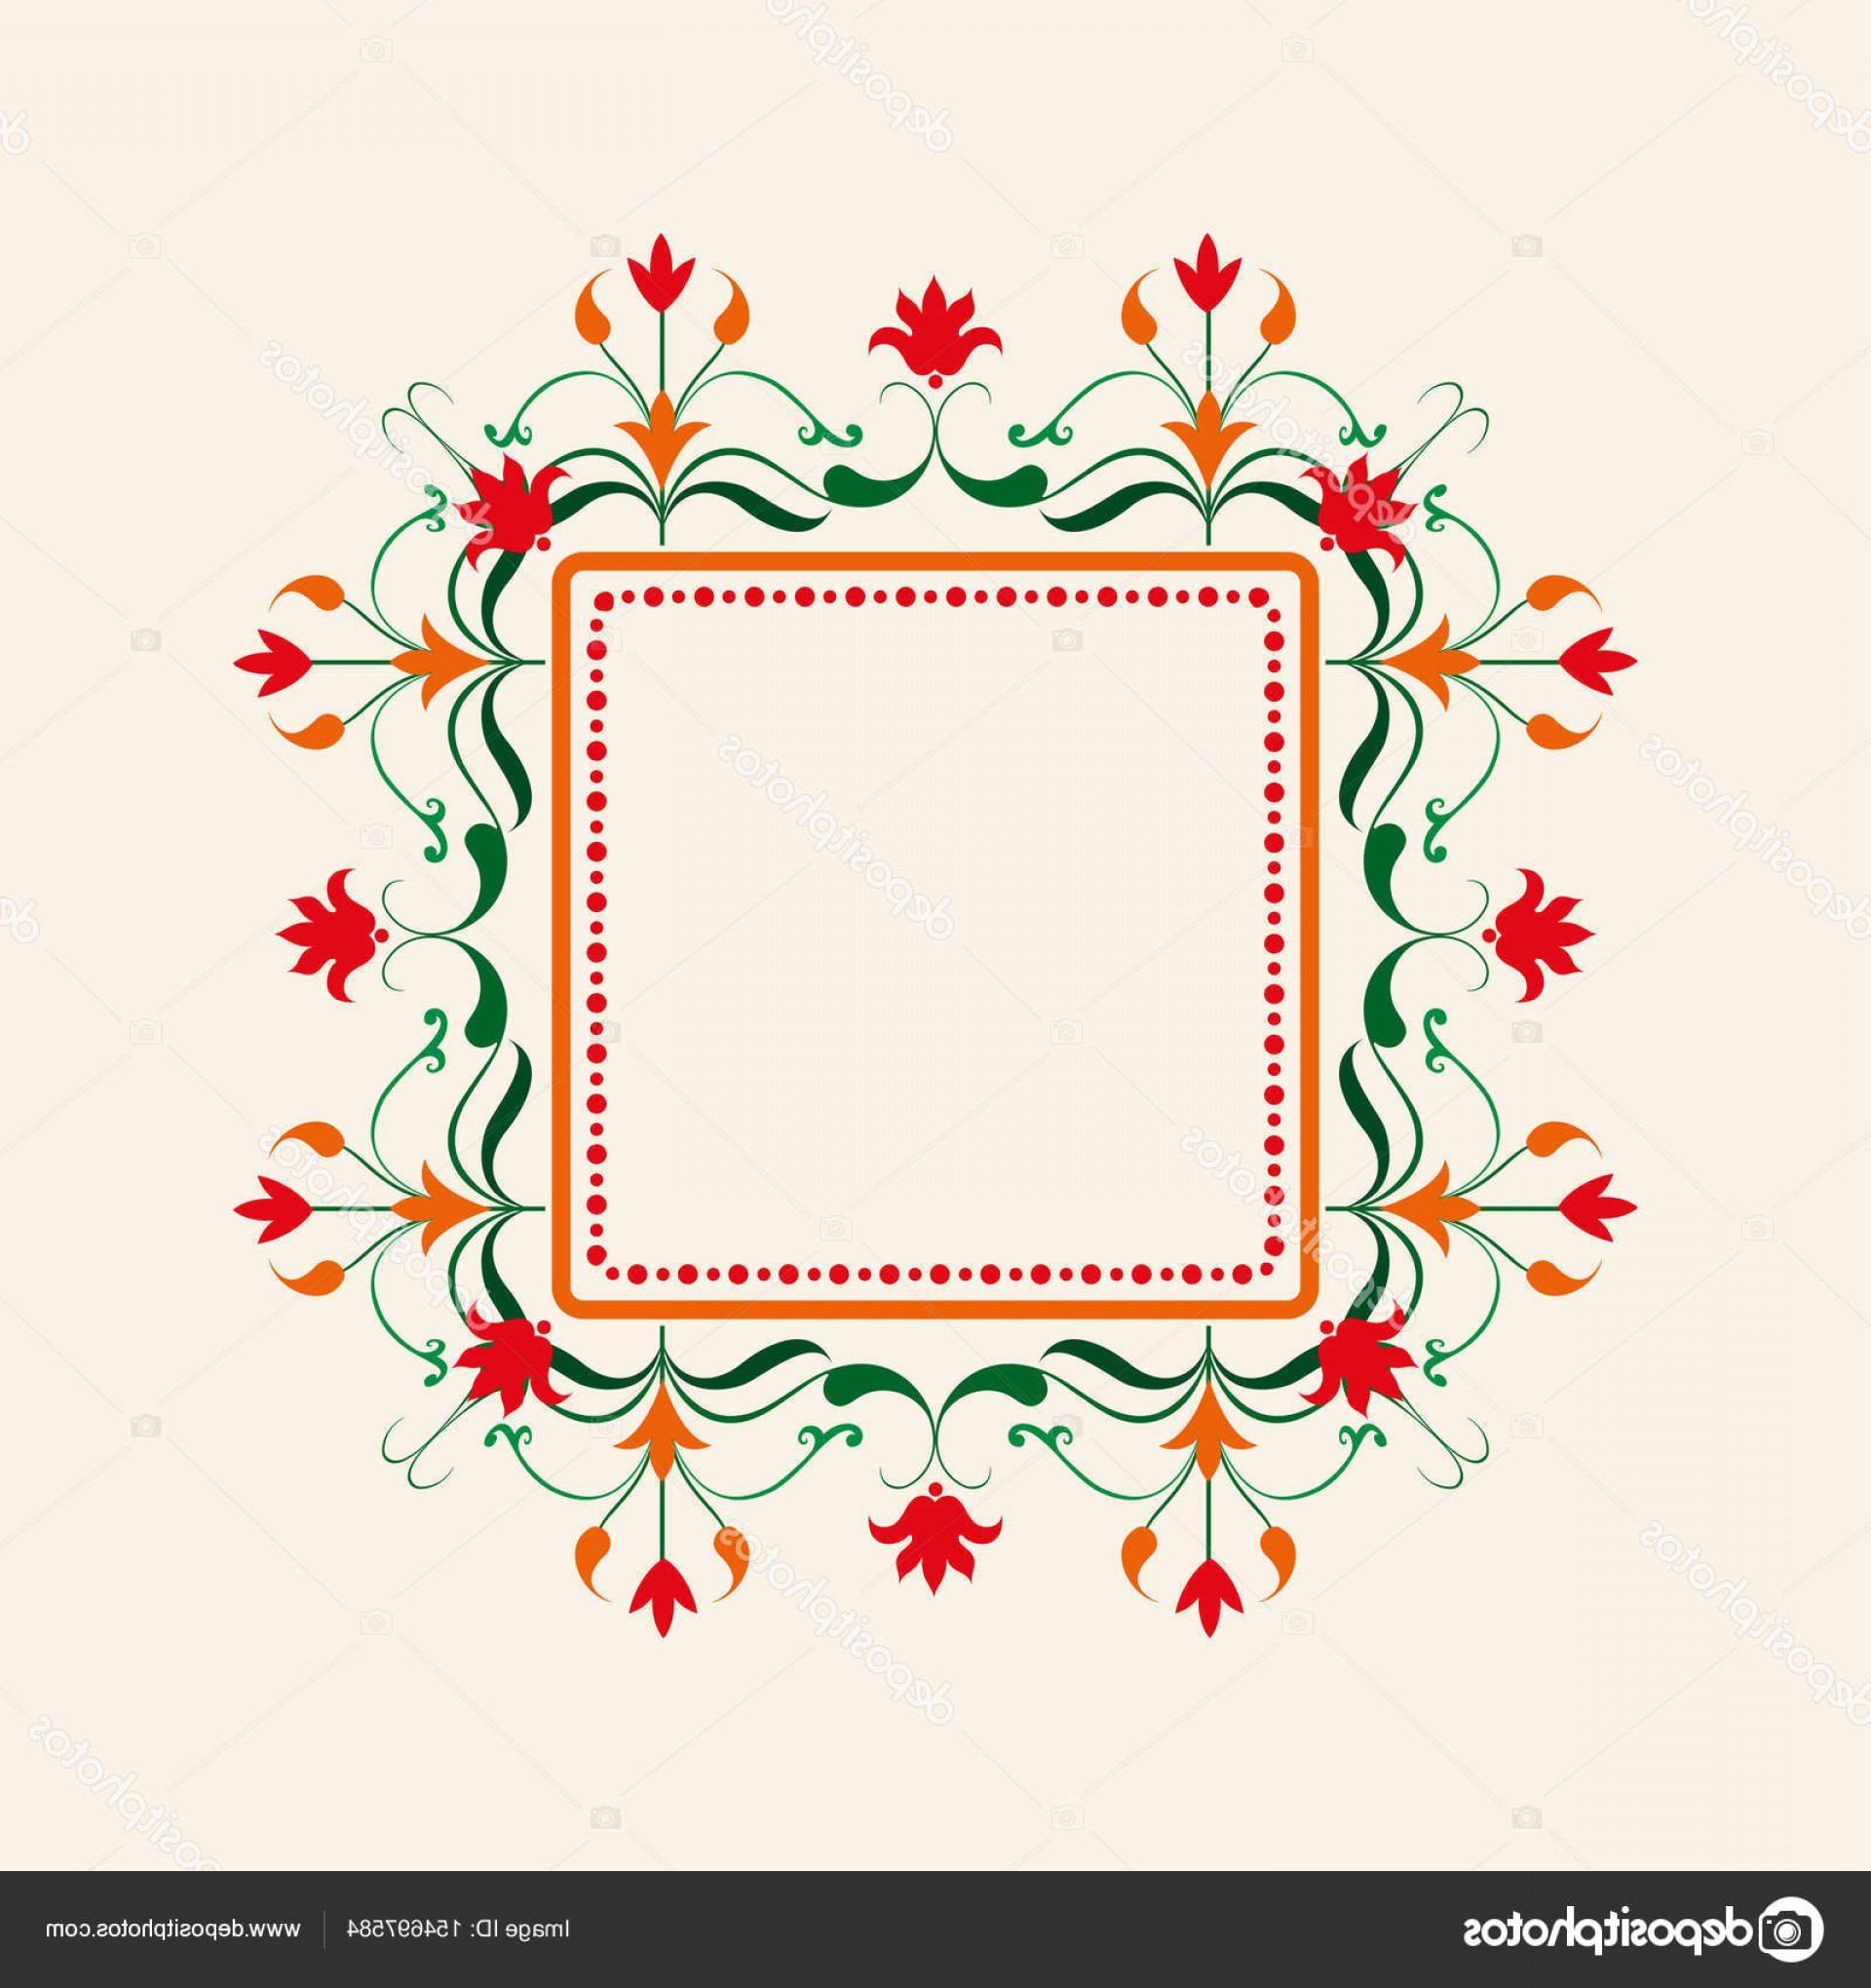 Birthday Card Vector Frame Designs: Stock Illustration Floral Border Vector Decorative Frame